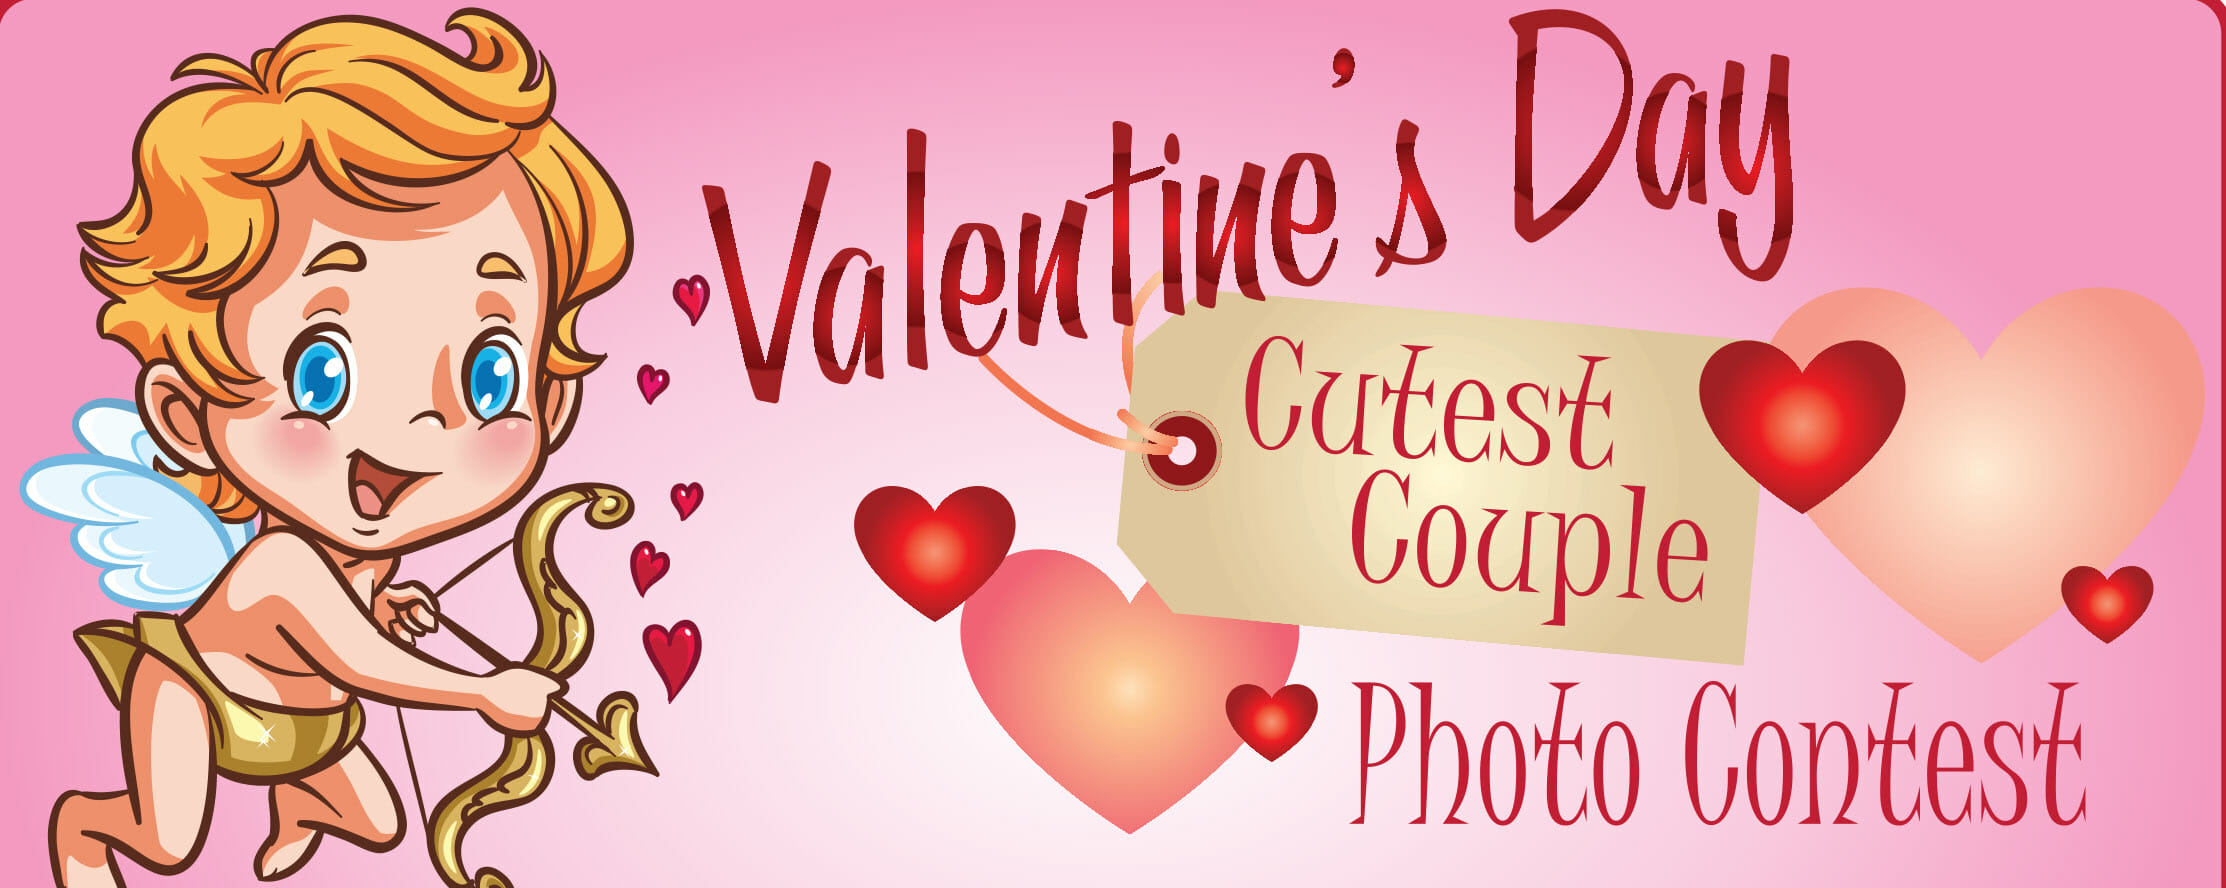 Valentines day cutest couple photo contest social findlay kristyandbryce Image collections